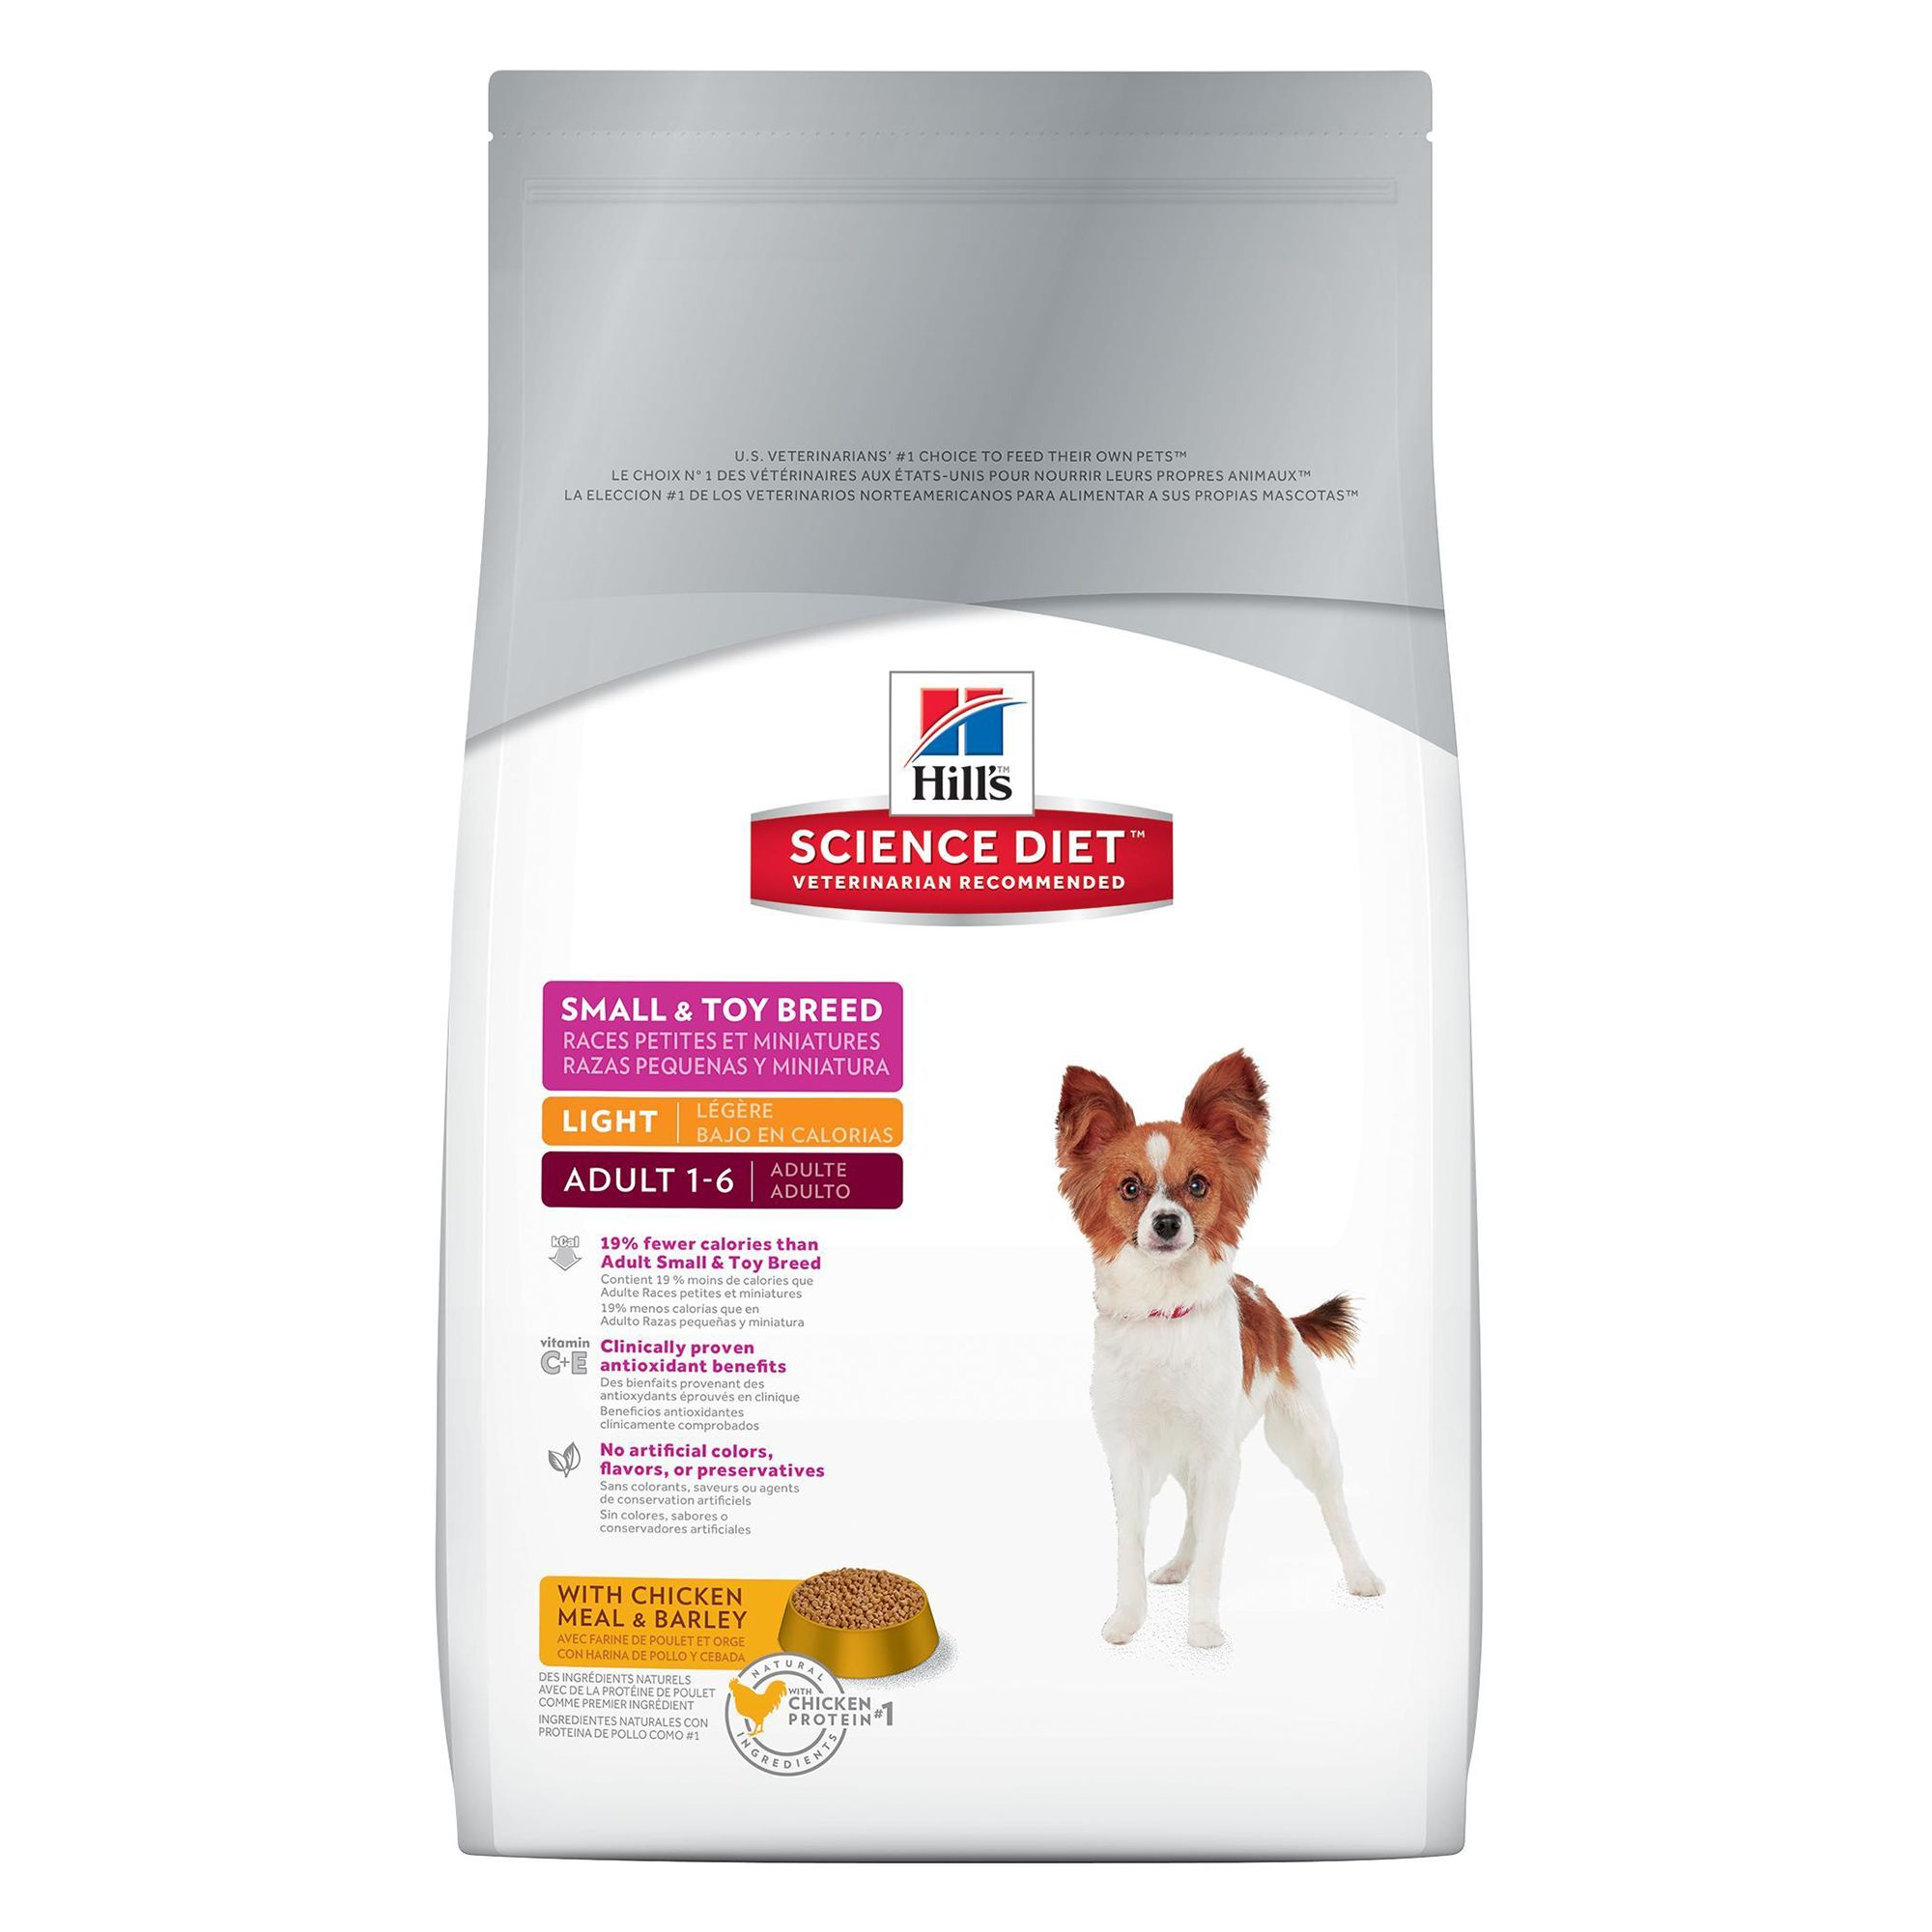 Hill S Science Diet Small And Toy Breed Light Adult Dog Food